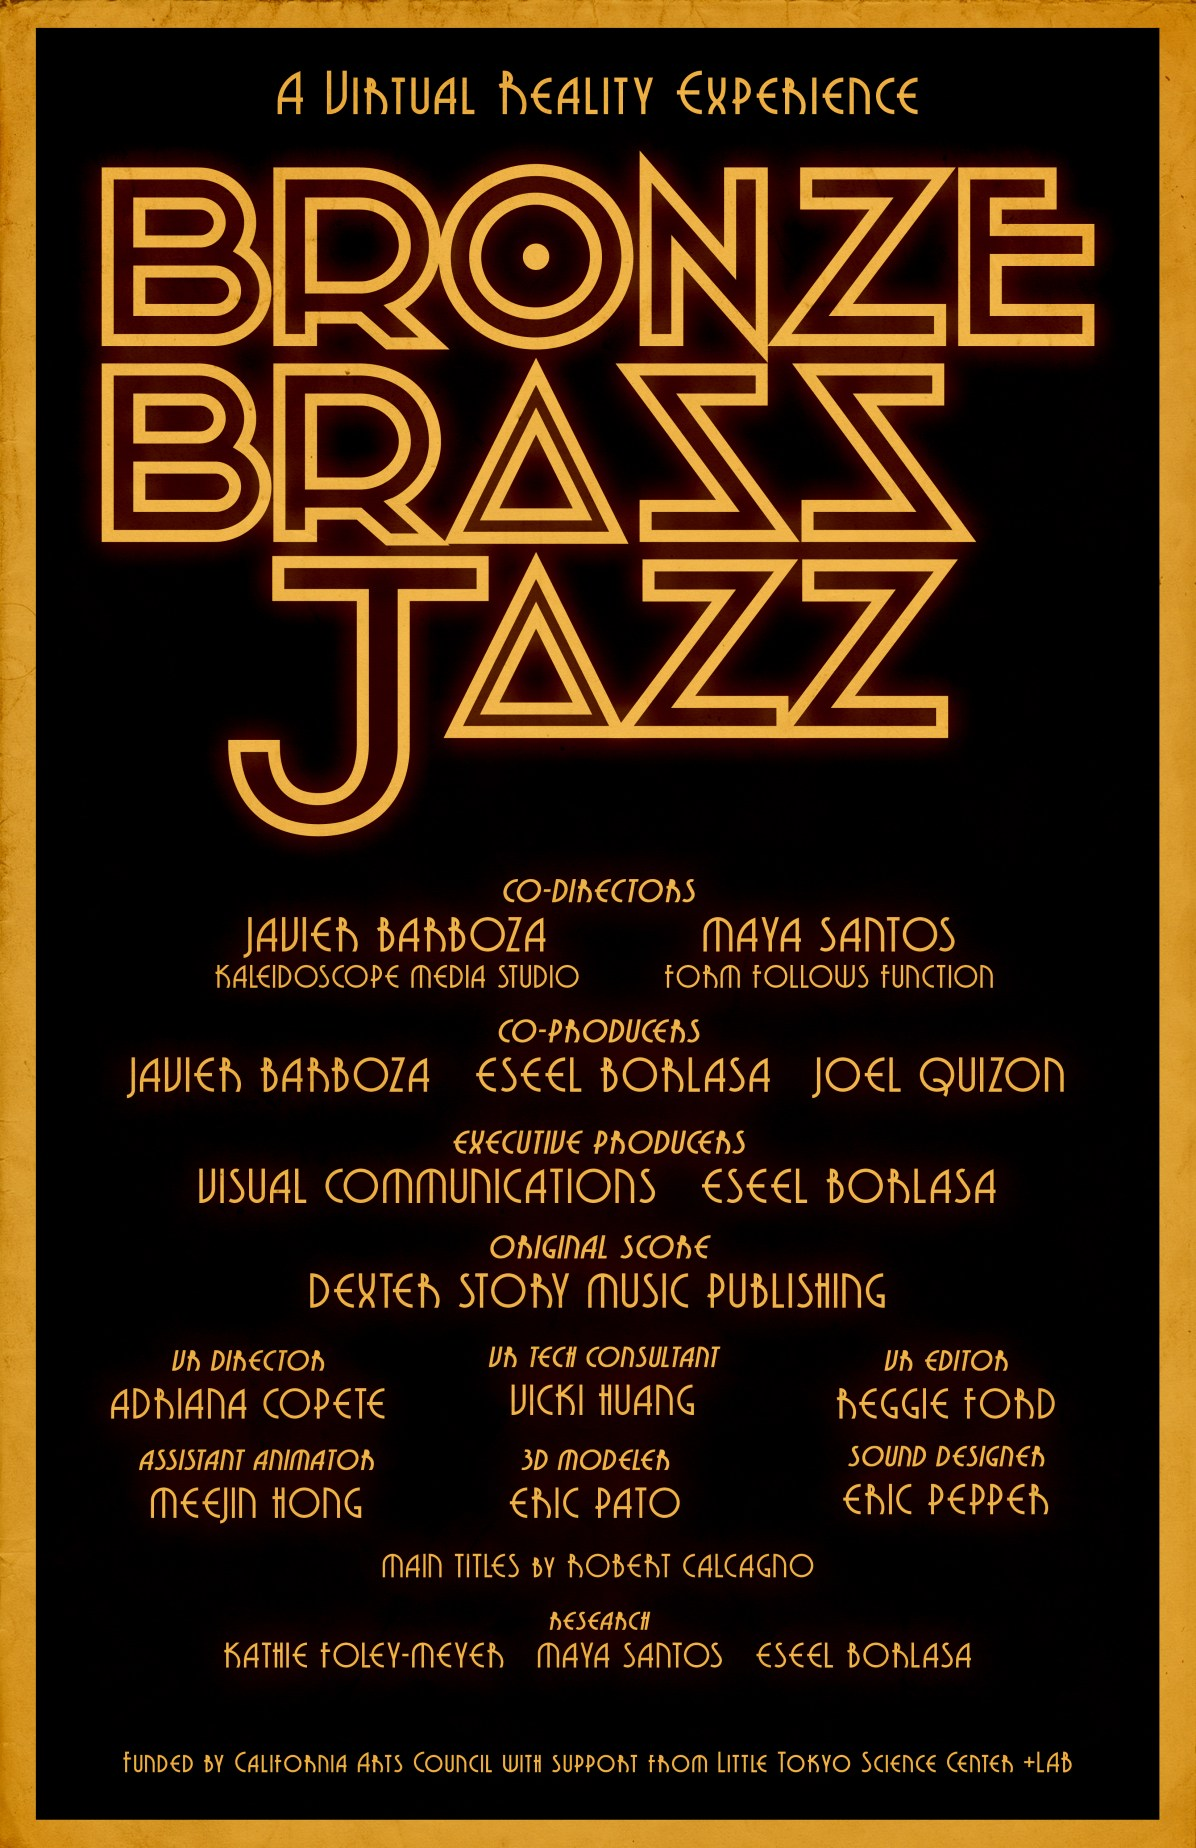 Bronze Brass Jazz Poster_Color